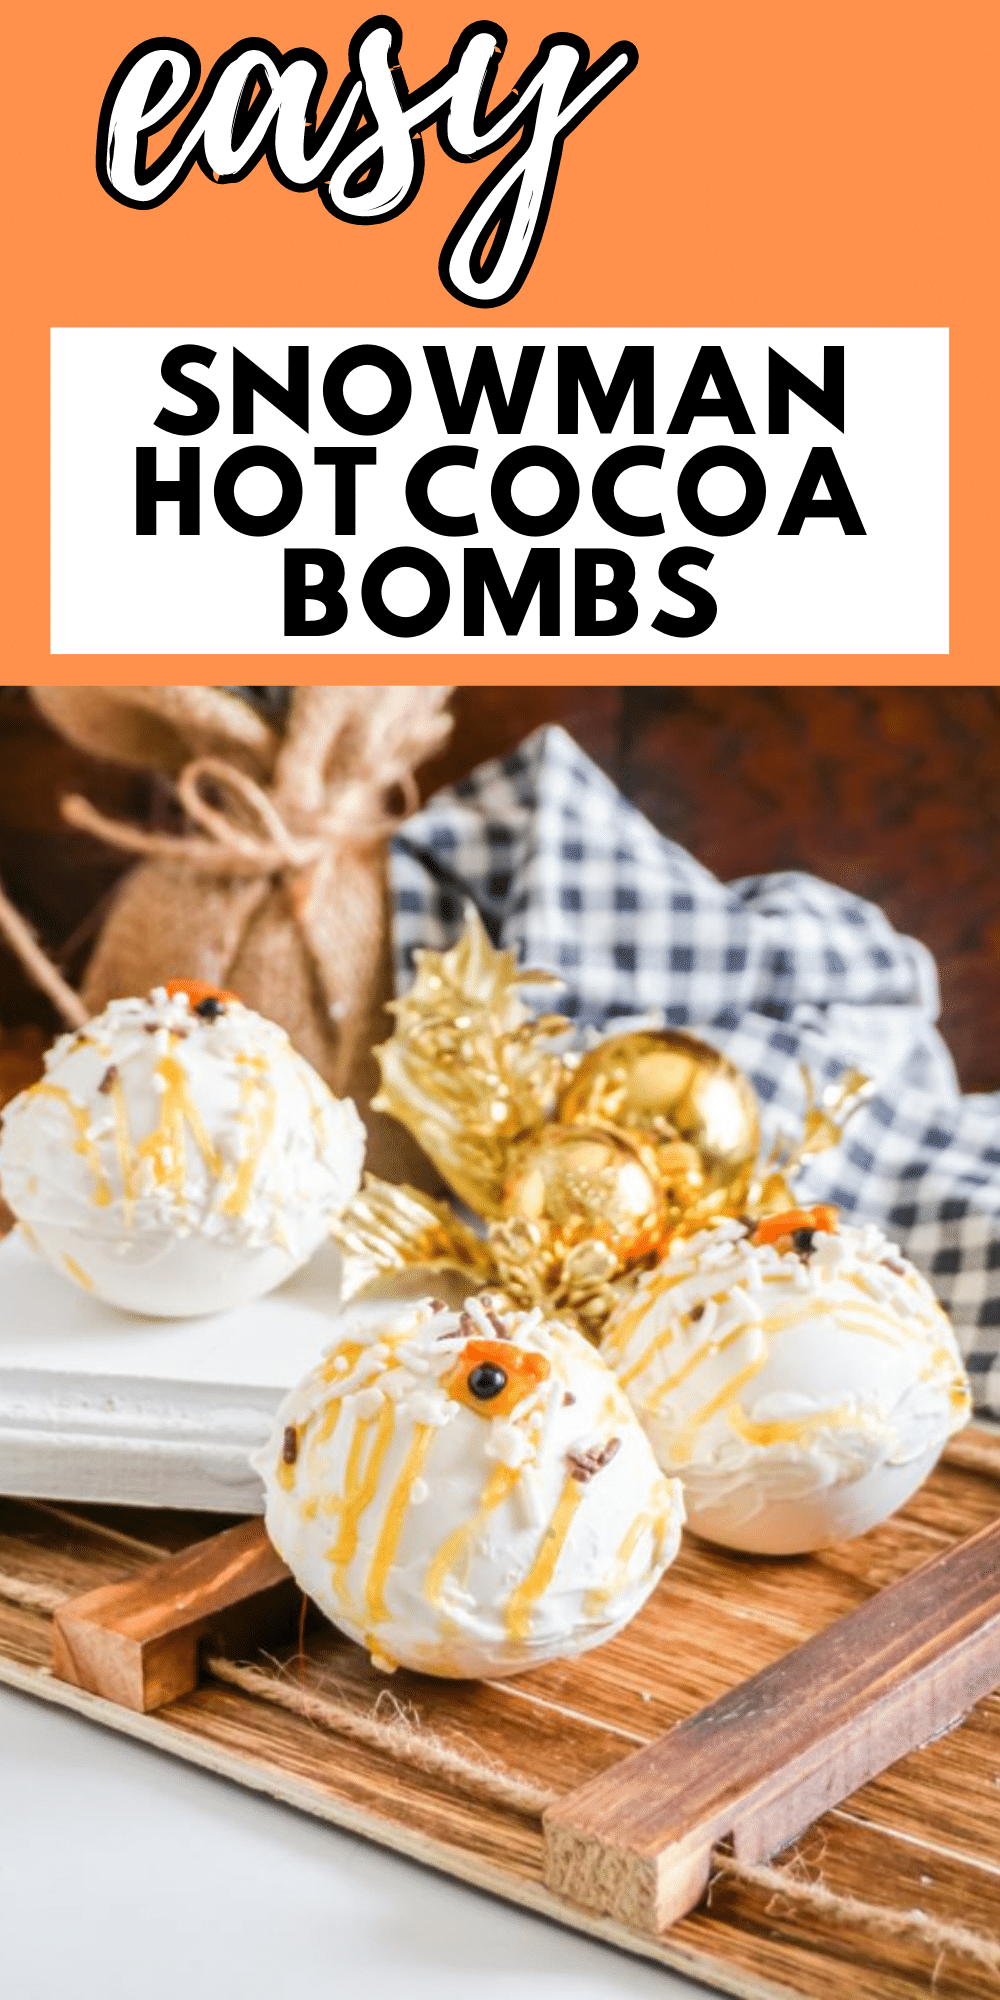 If you're looking for an awesome new treat, don't miss out on these Snowman Hot Cocoa Bombs! Perfect for your hot chocolate cravings! #snowman #hotcocoa #hotcocoabombs via @wondermomwannab